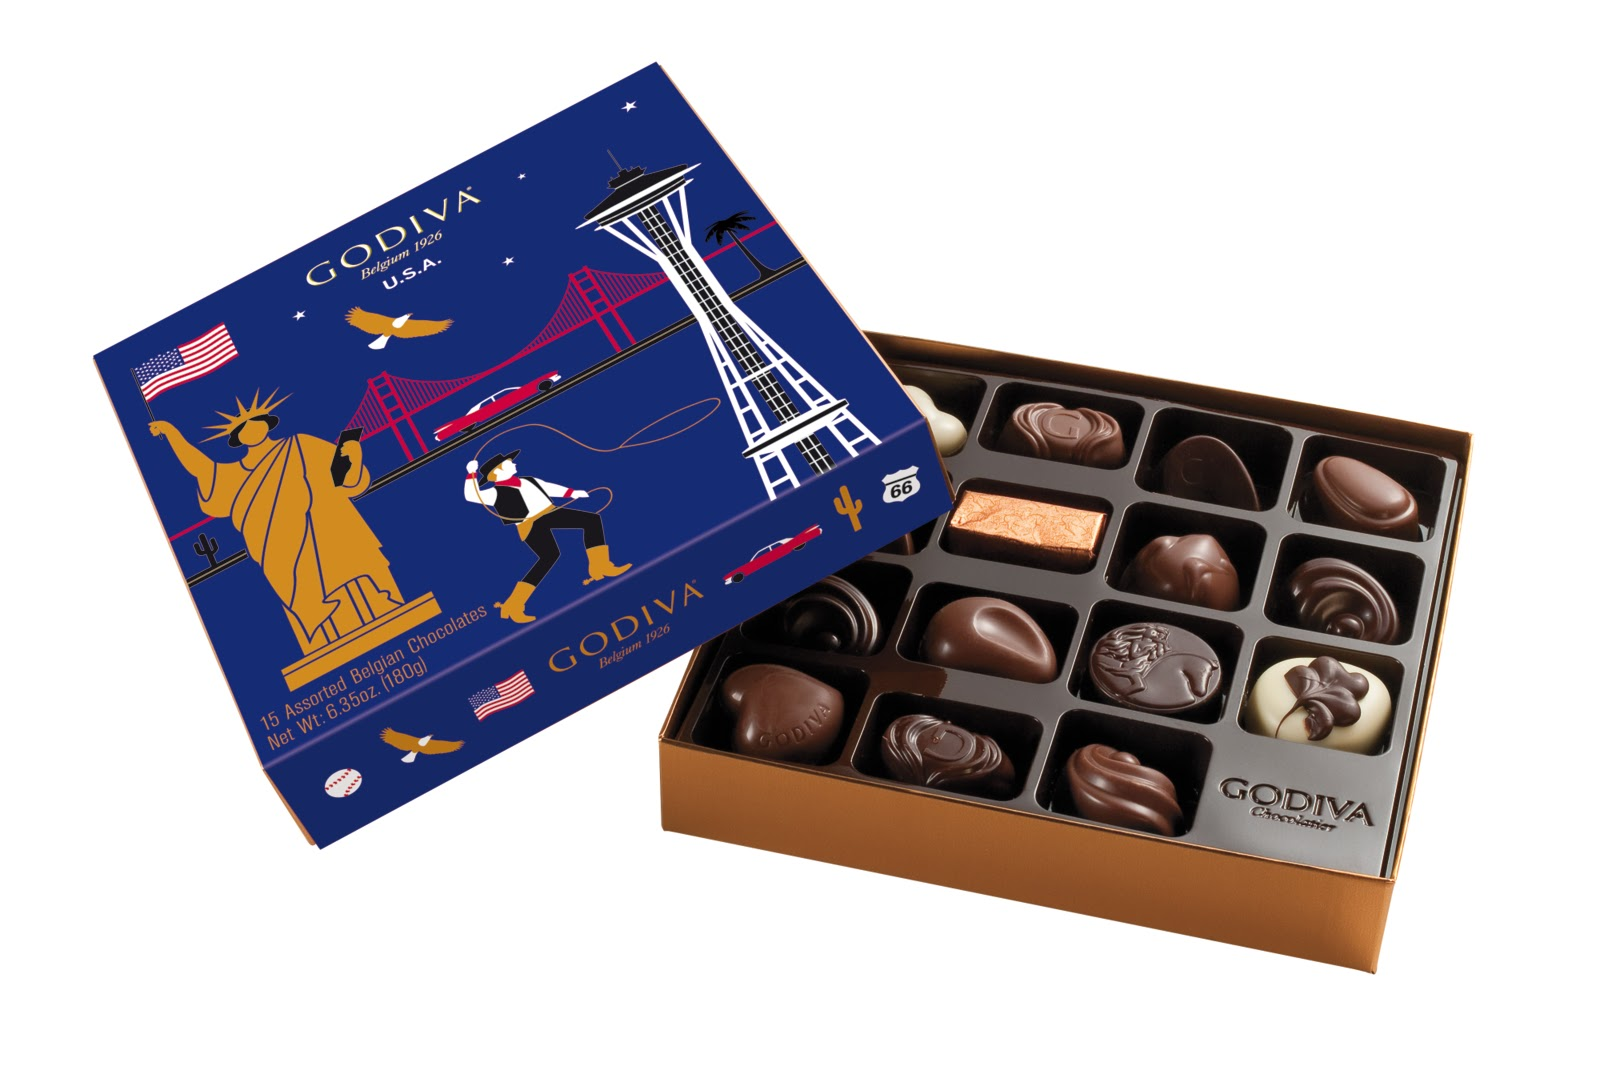 Essential communications godiva launches exciting new for Go diva